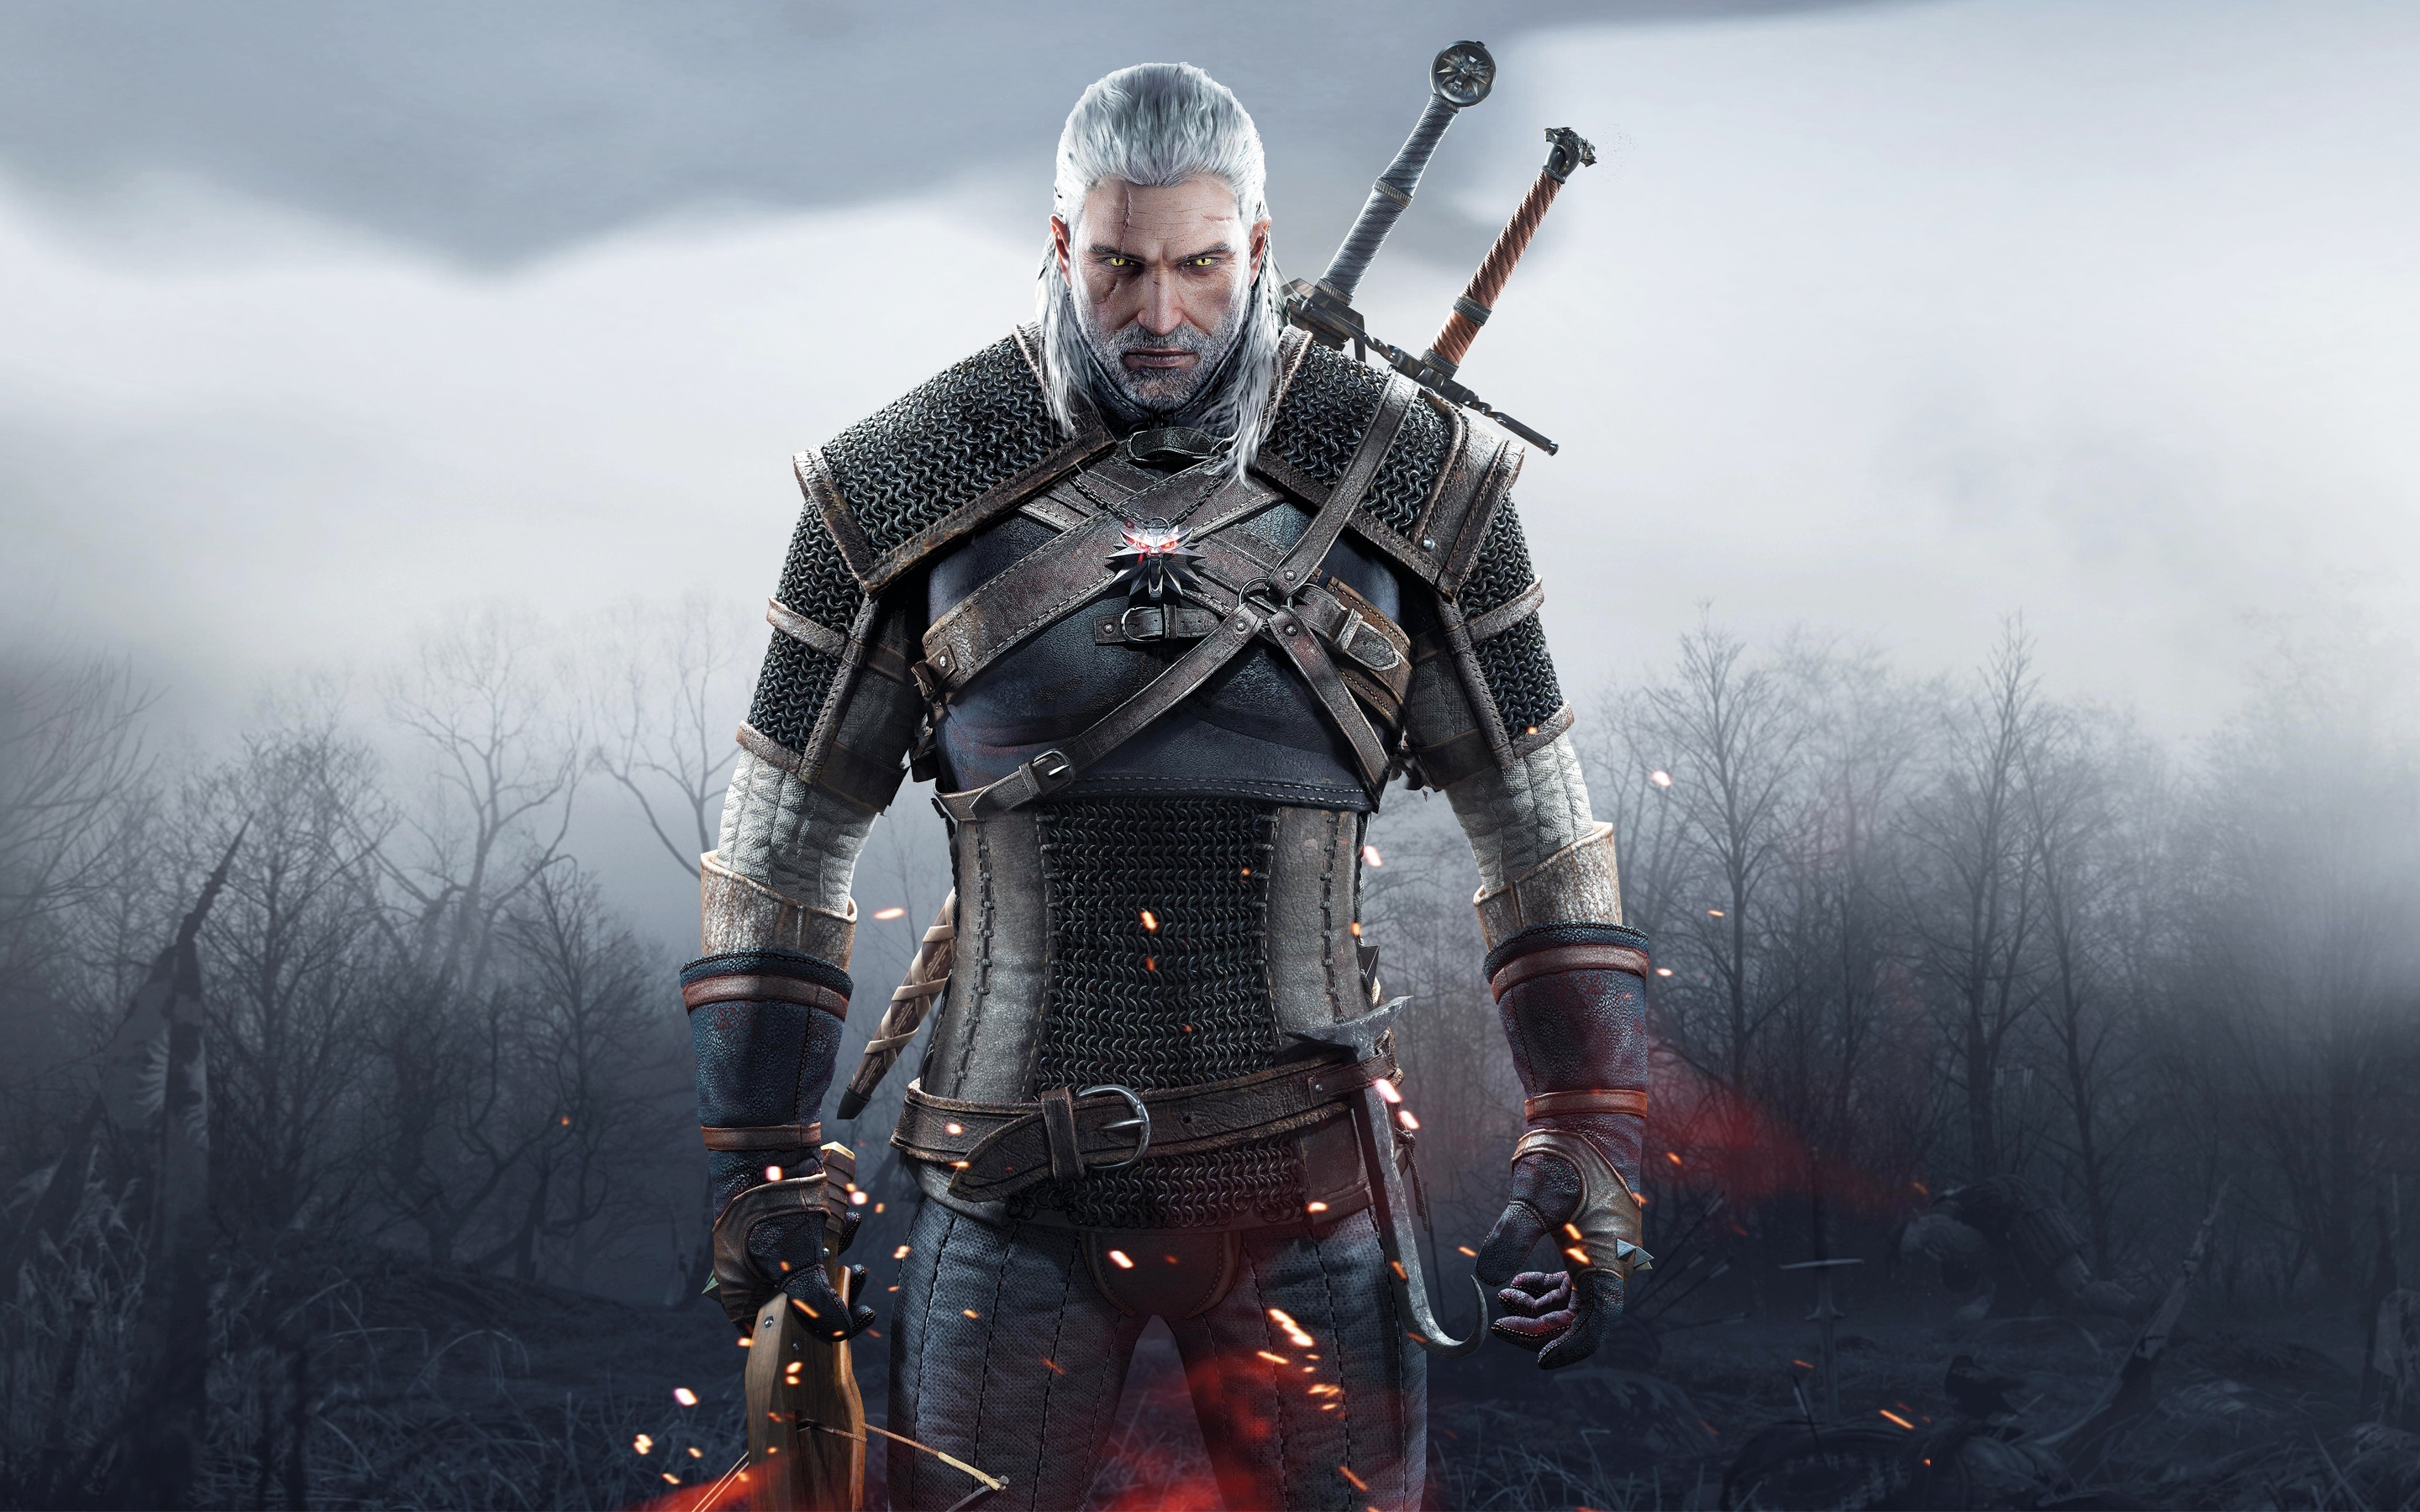 The Witcher 3 Wallpaper 1920x1080: The Witcher 3 Wallpapers